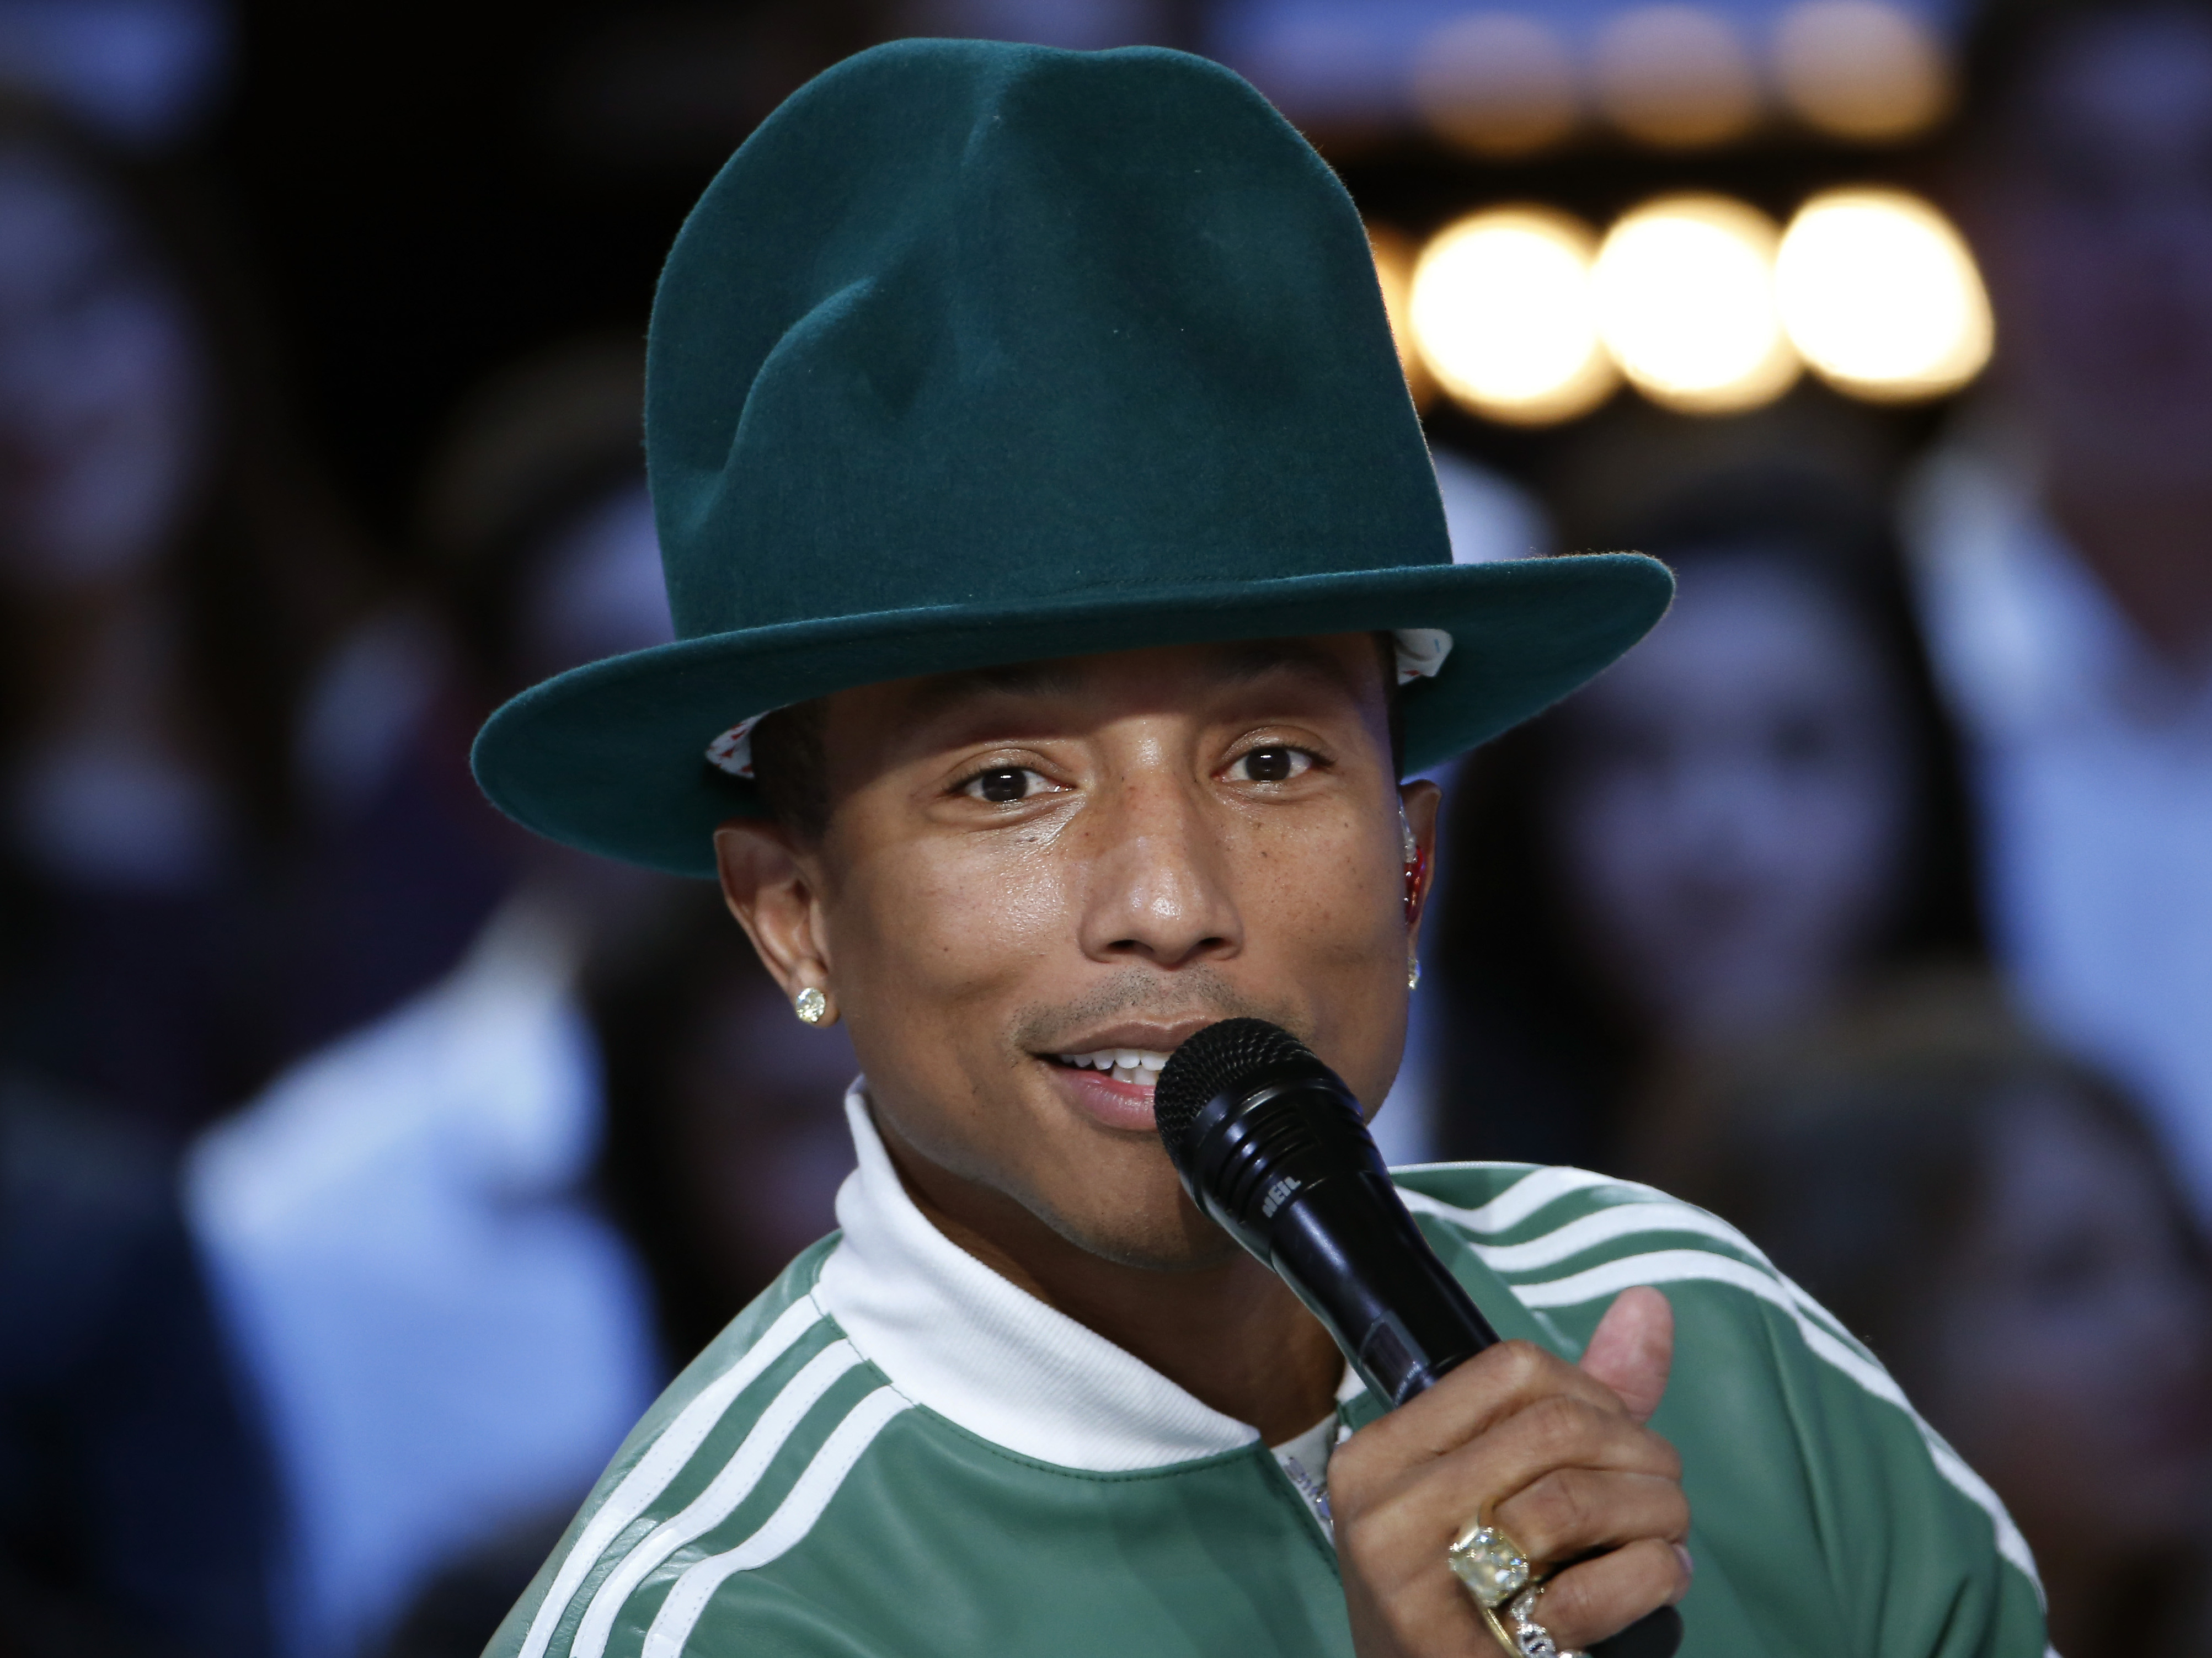 Get Lucky On St. Patrick's Day With These 25 R&B Songs